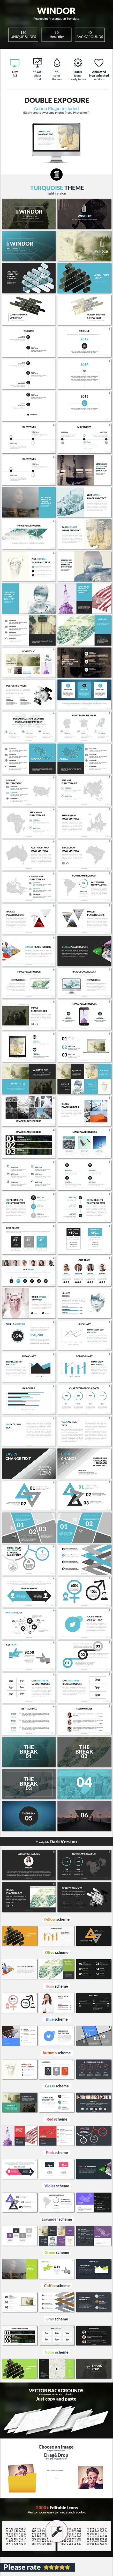 WINDOR Modern and Minimal Template - Business PowerPoint Templates